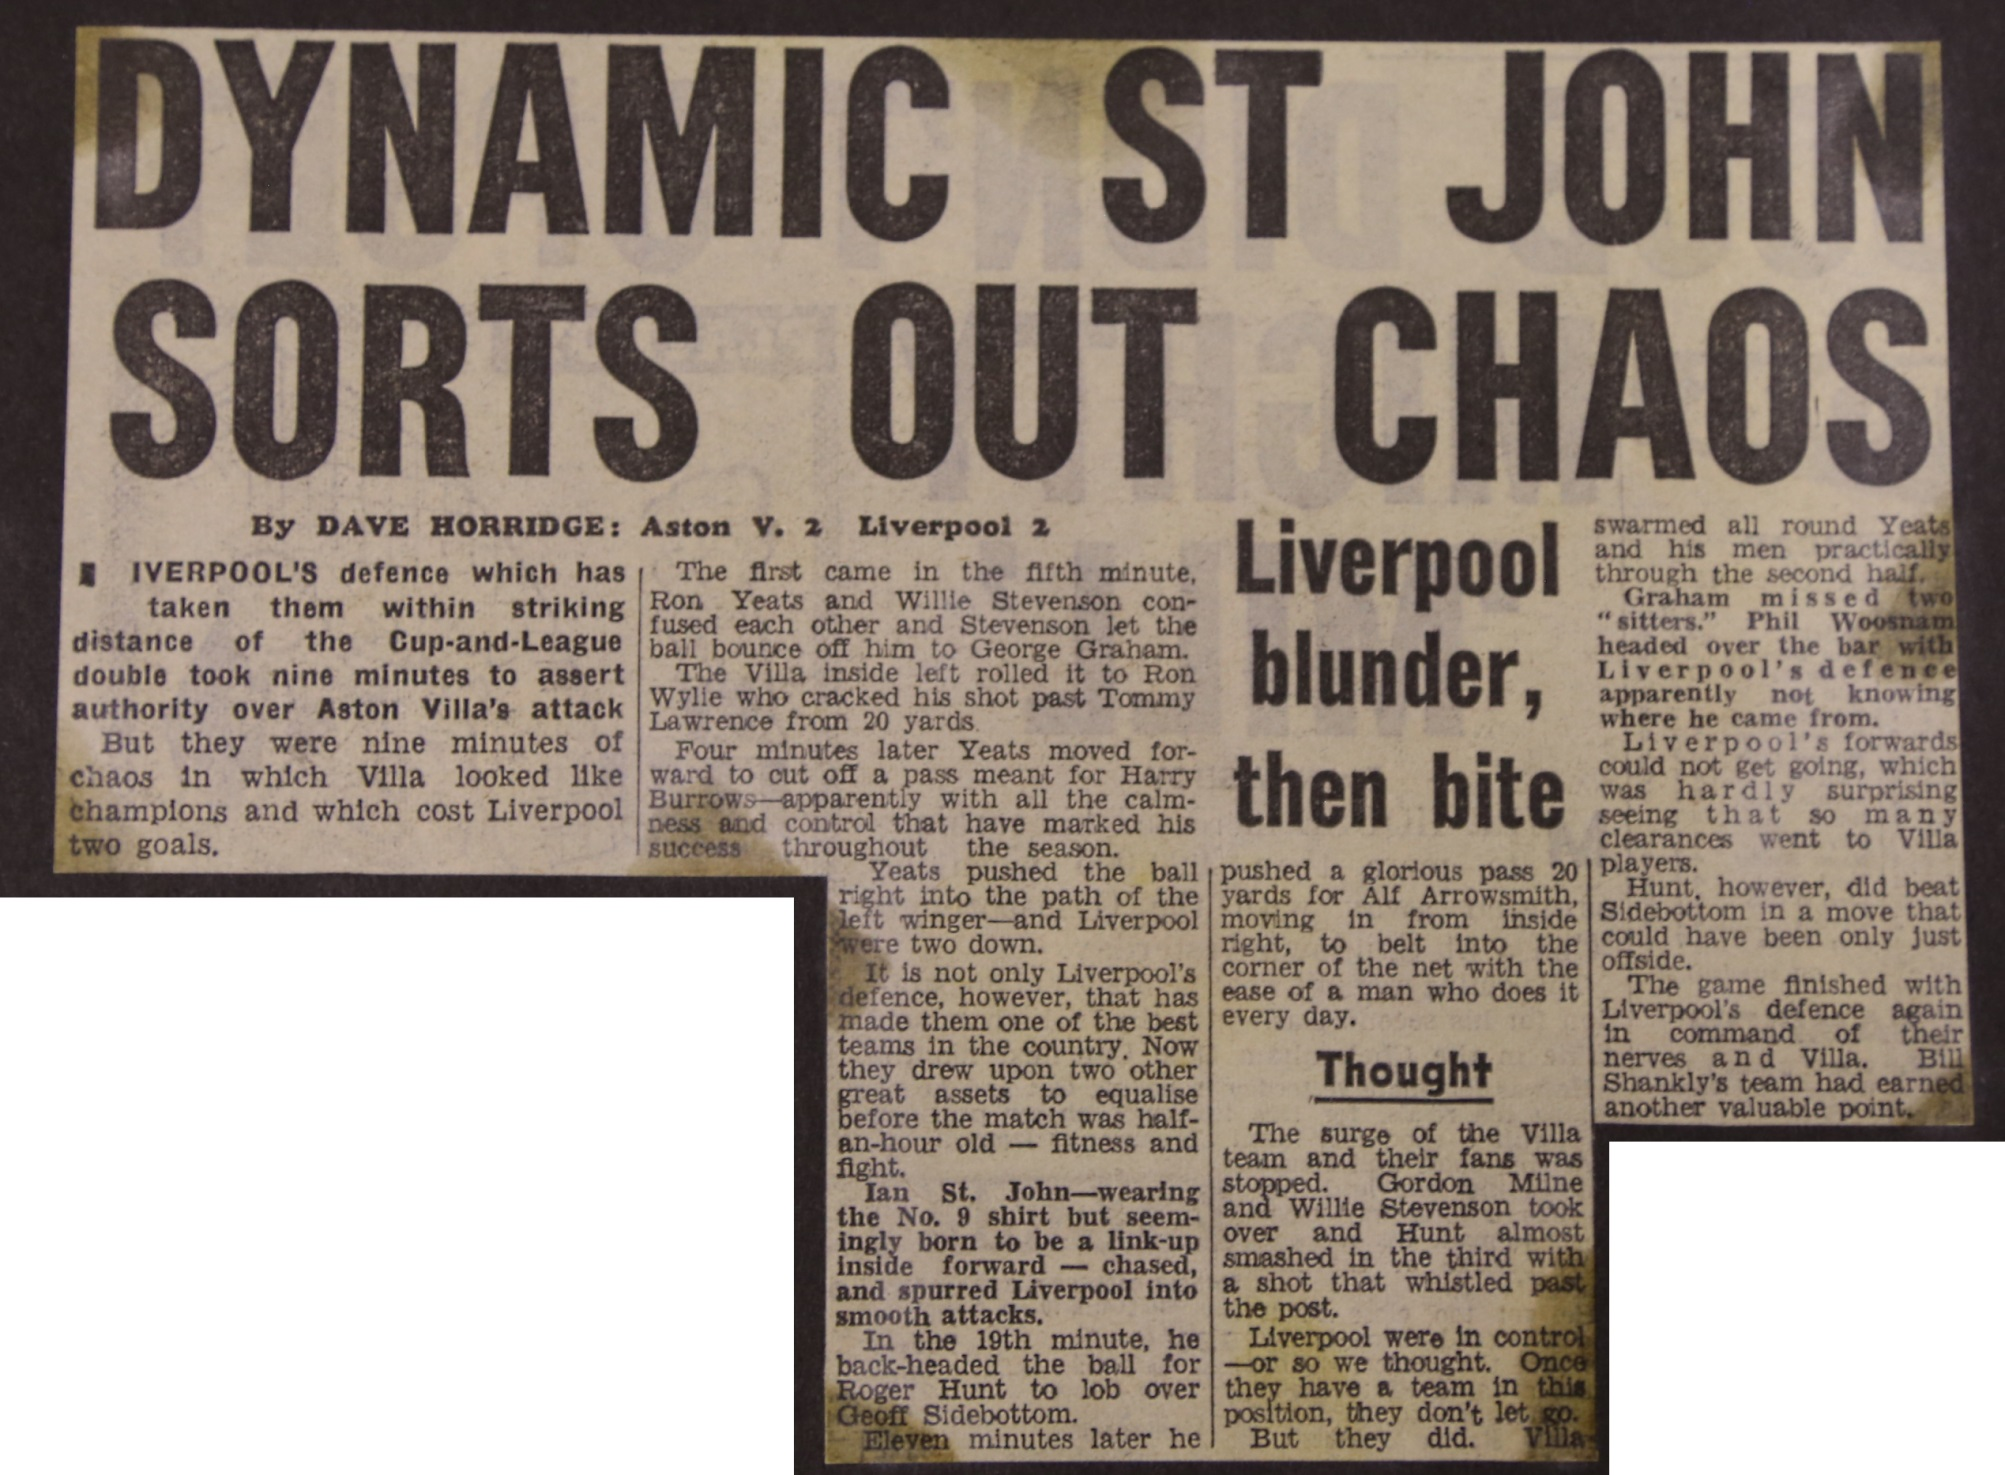 Dynamc St John sorts out chaos - 19 February 1964